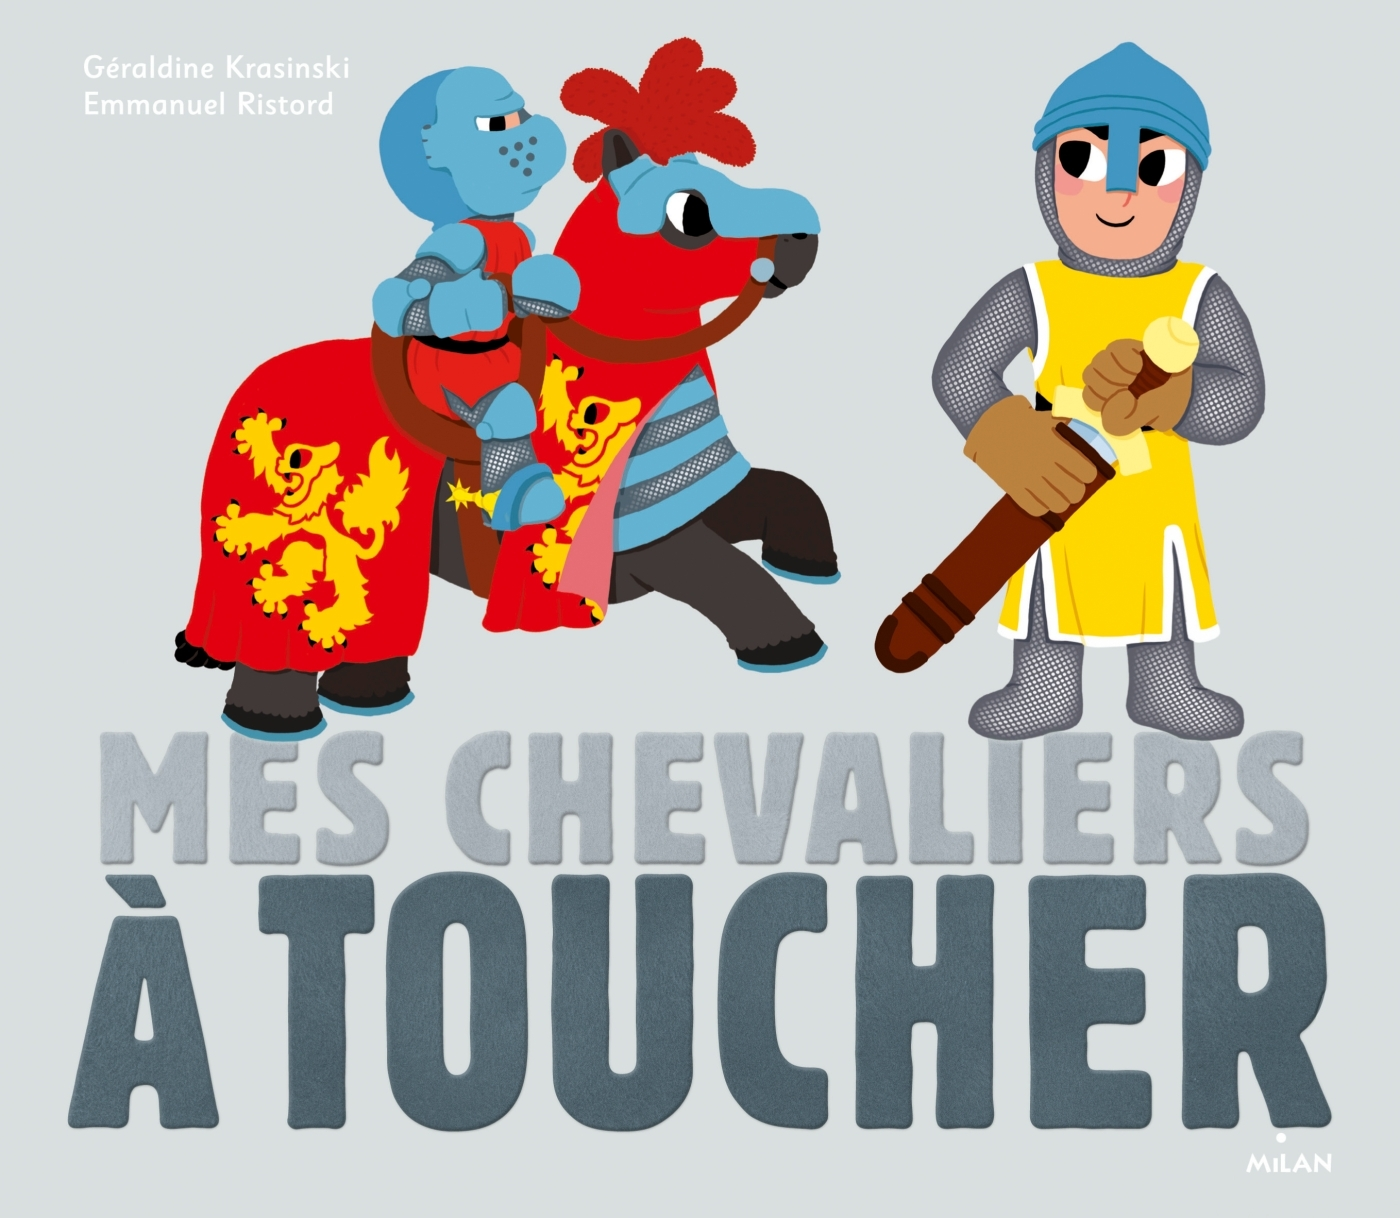 MES CHEVALIERS A TOUCHER